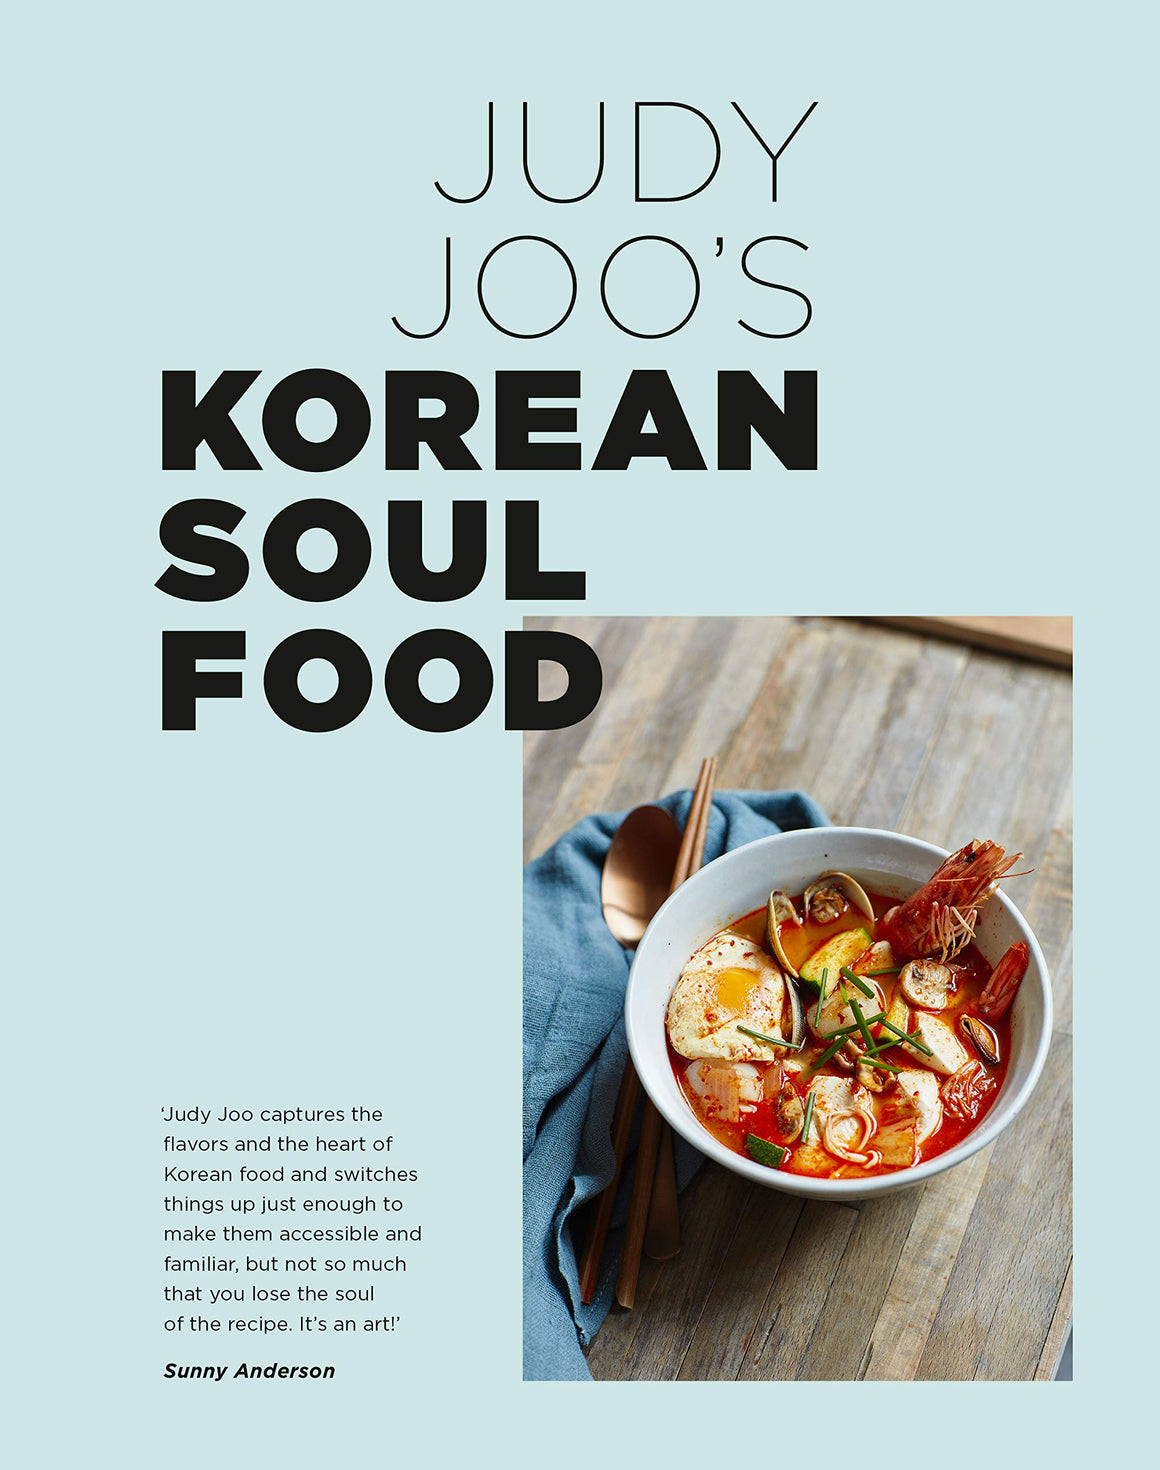 Judy Joo. Judy Joo's Korean Soul Food: Authentic Dishes and Modern Twists.